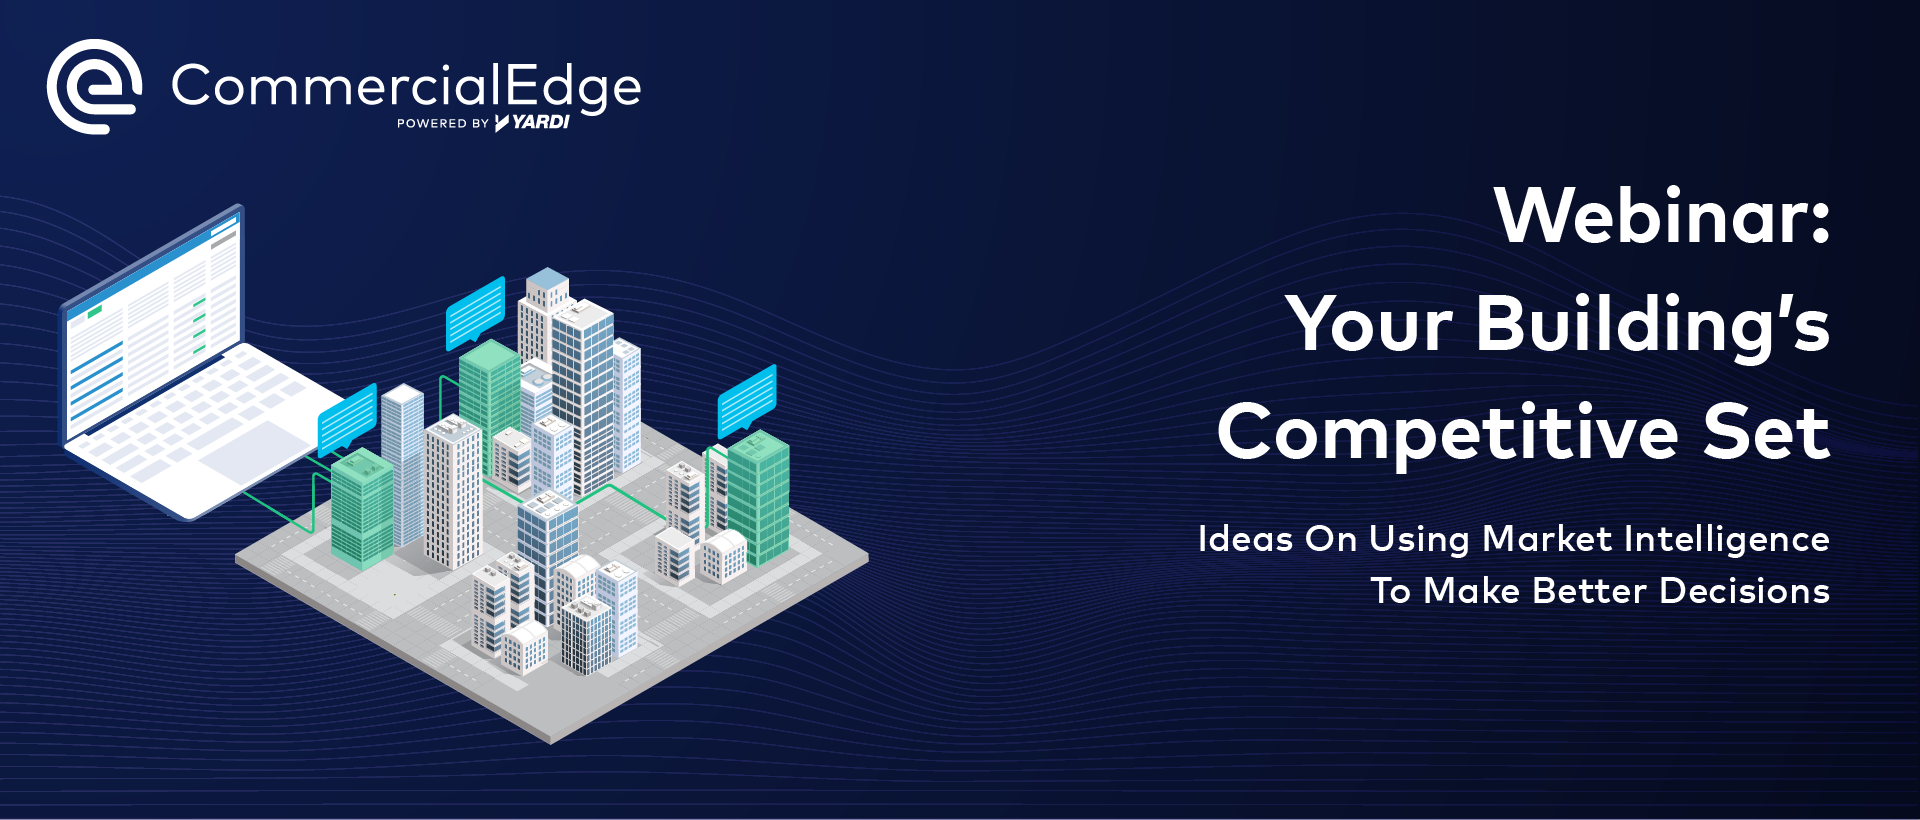 CommercialEdge Teams Up with Bisnow for Competitive Sets Webinar: Ideas on Using Market Intelligence to Make Better Decisions